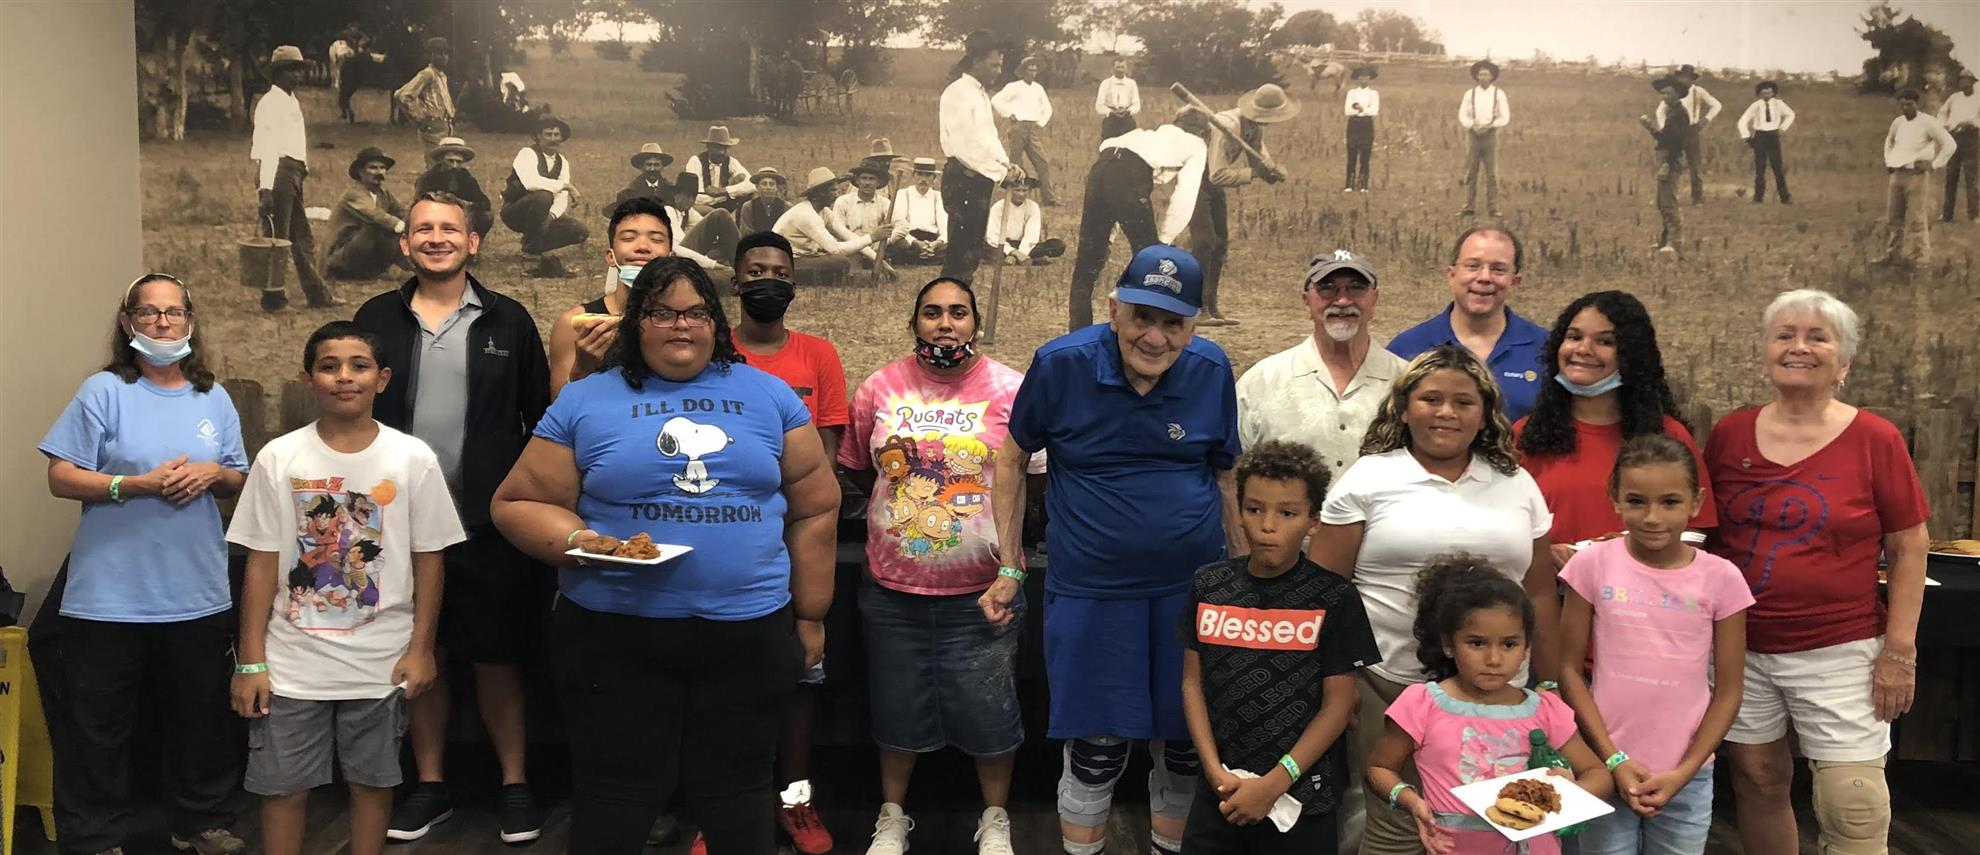 2021 Rotary Strikes out Hunger with B&G Club kids